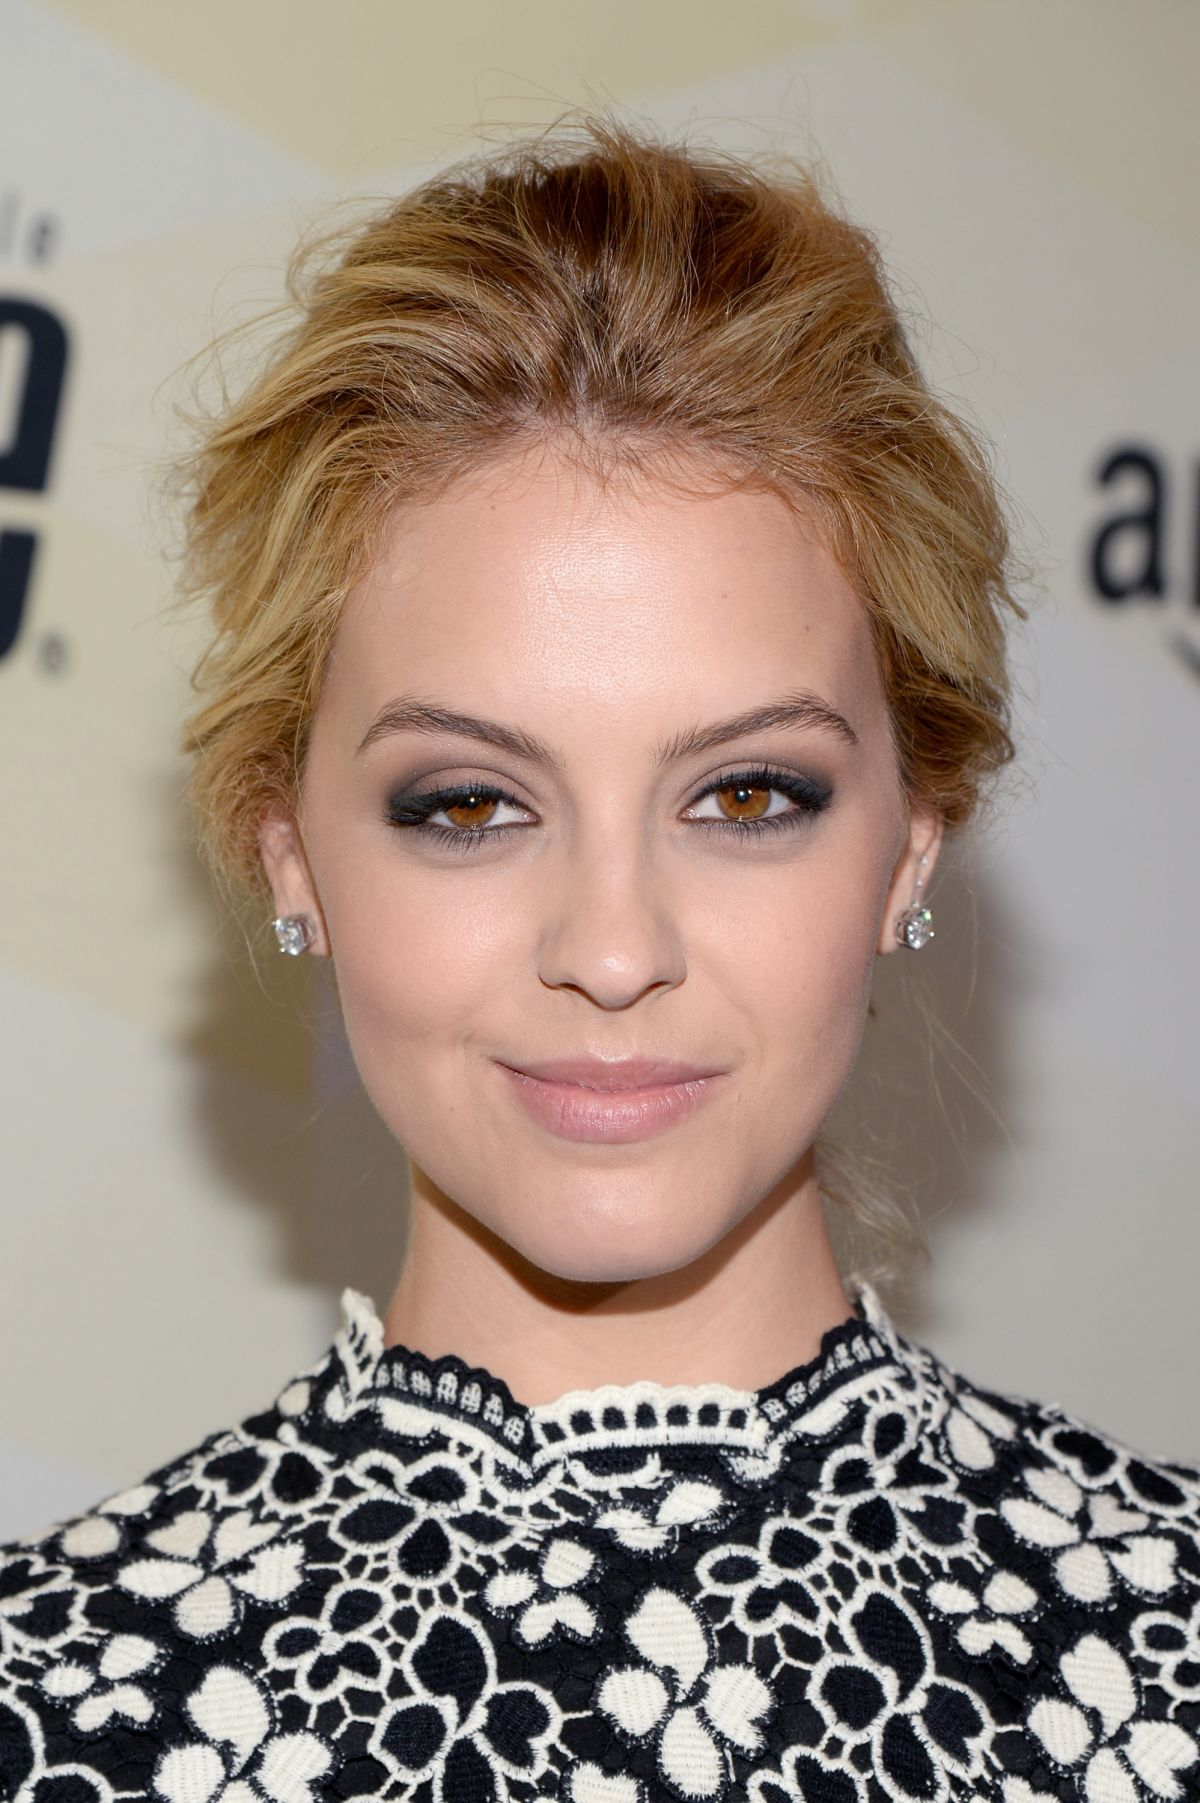 Gage Golightly Imdb Anniversary Party Los Angeles Demi Lovato